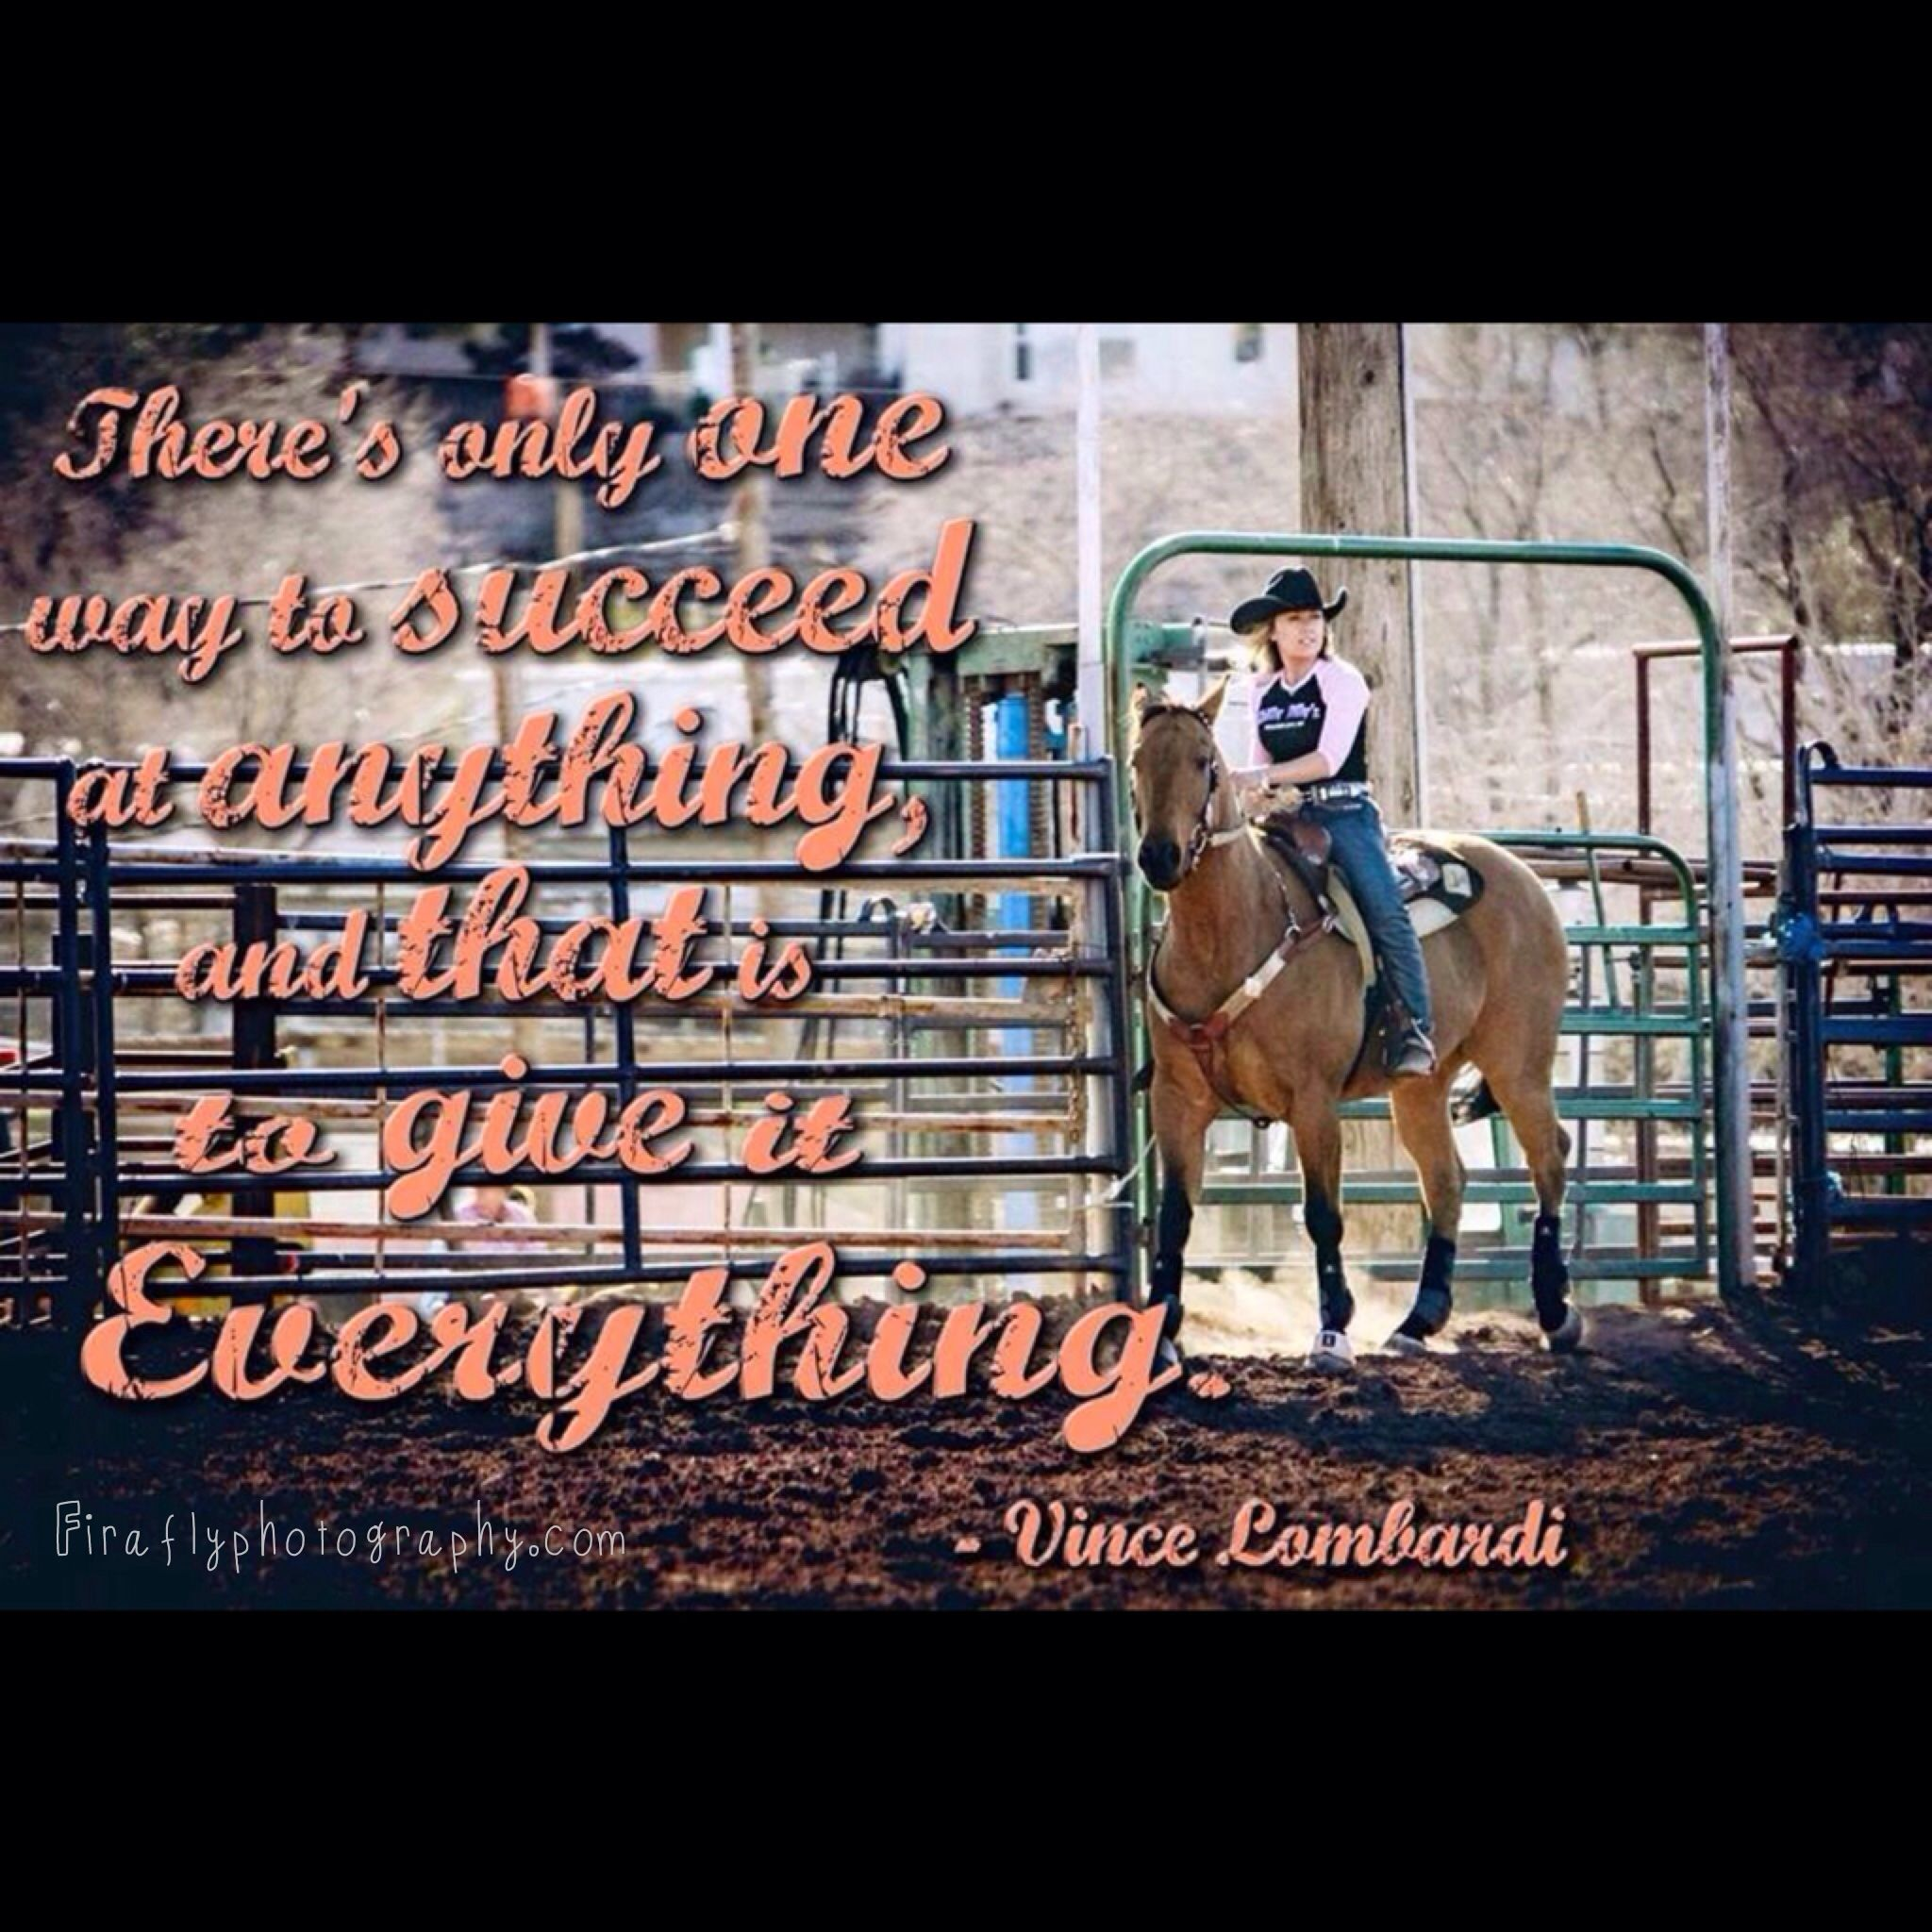 Barrel racing quote with Tilly Jenski Barrel racing